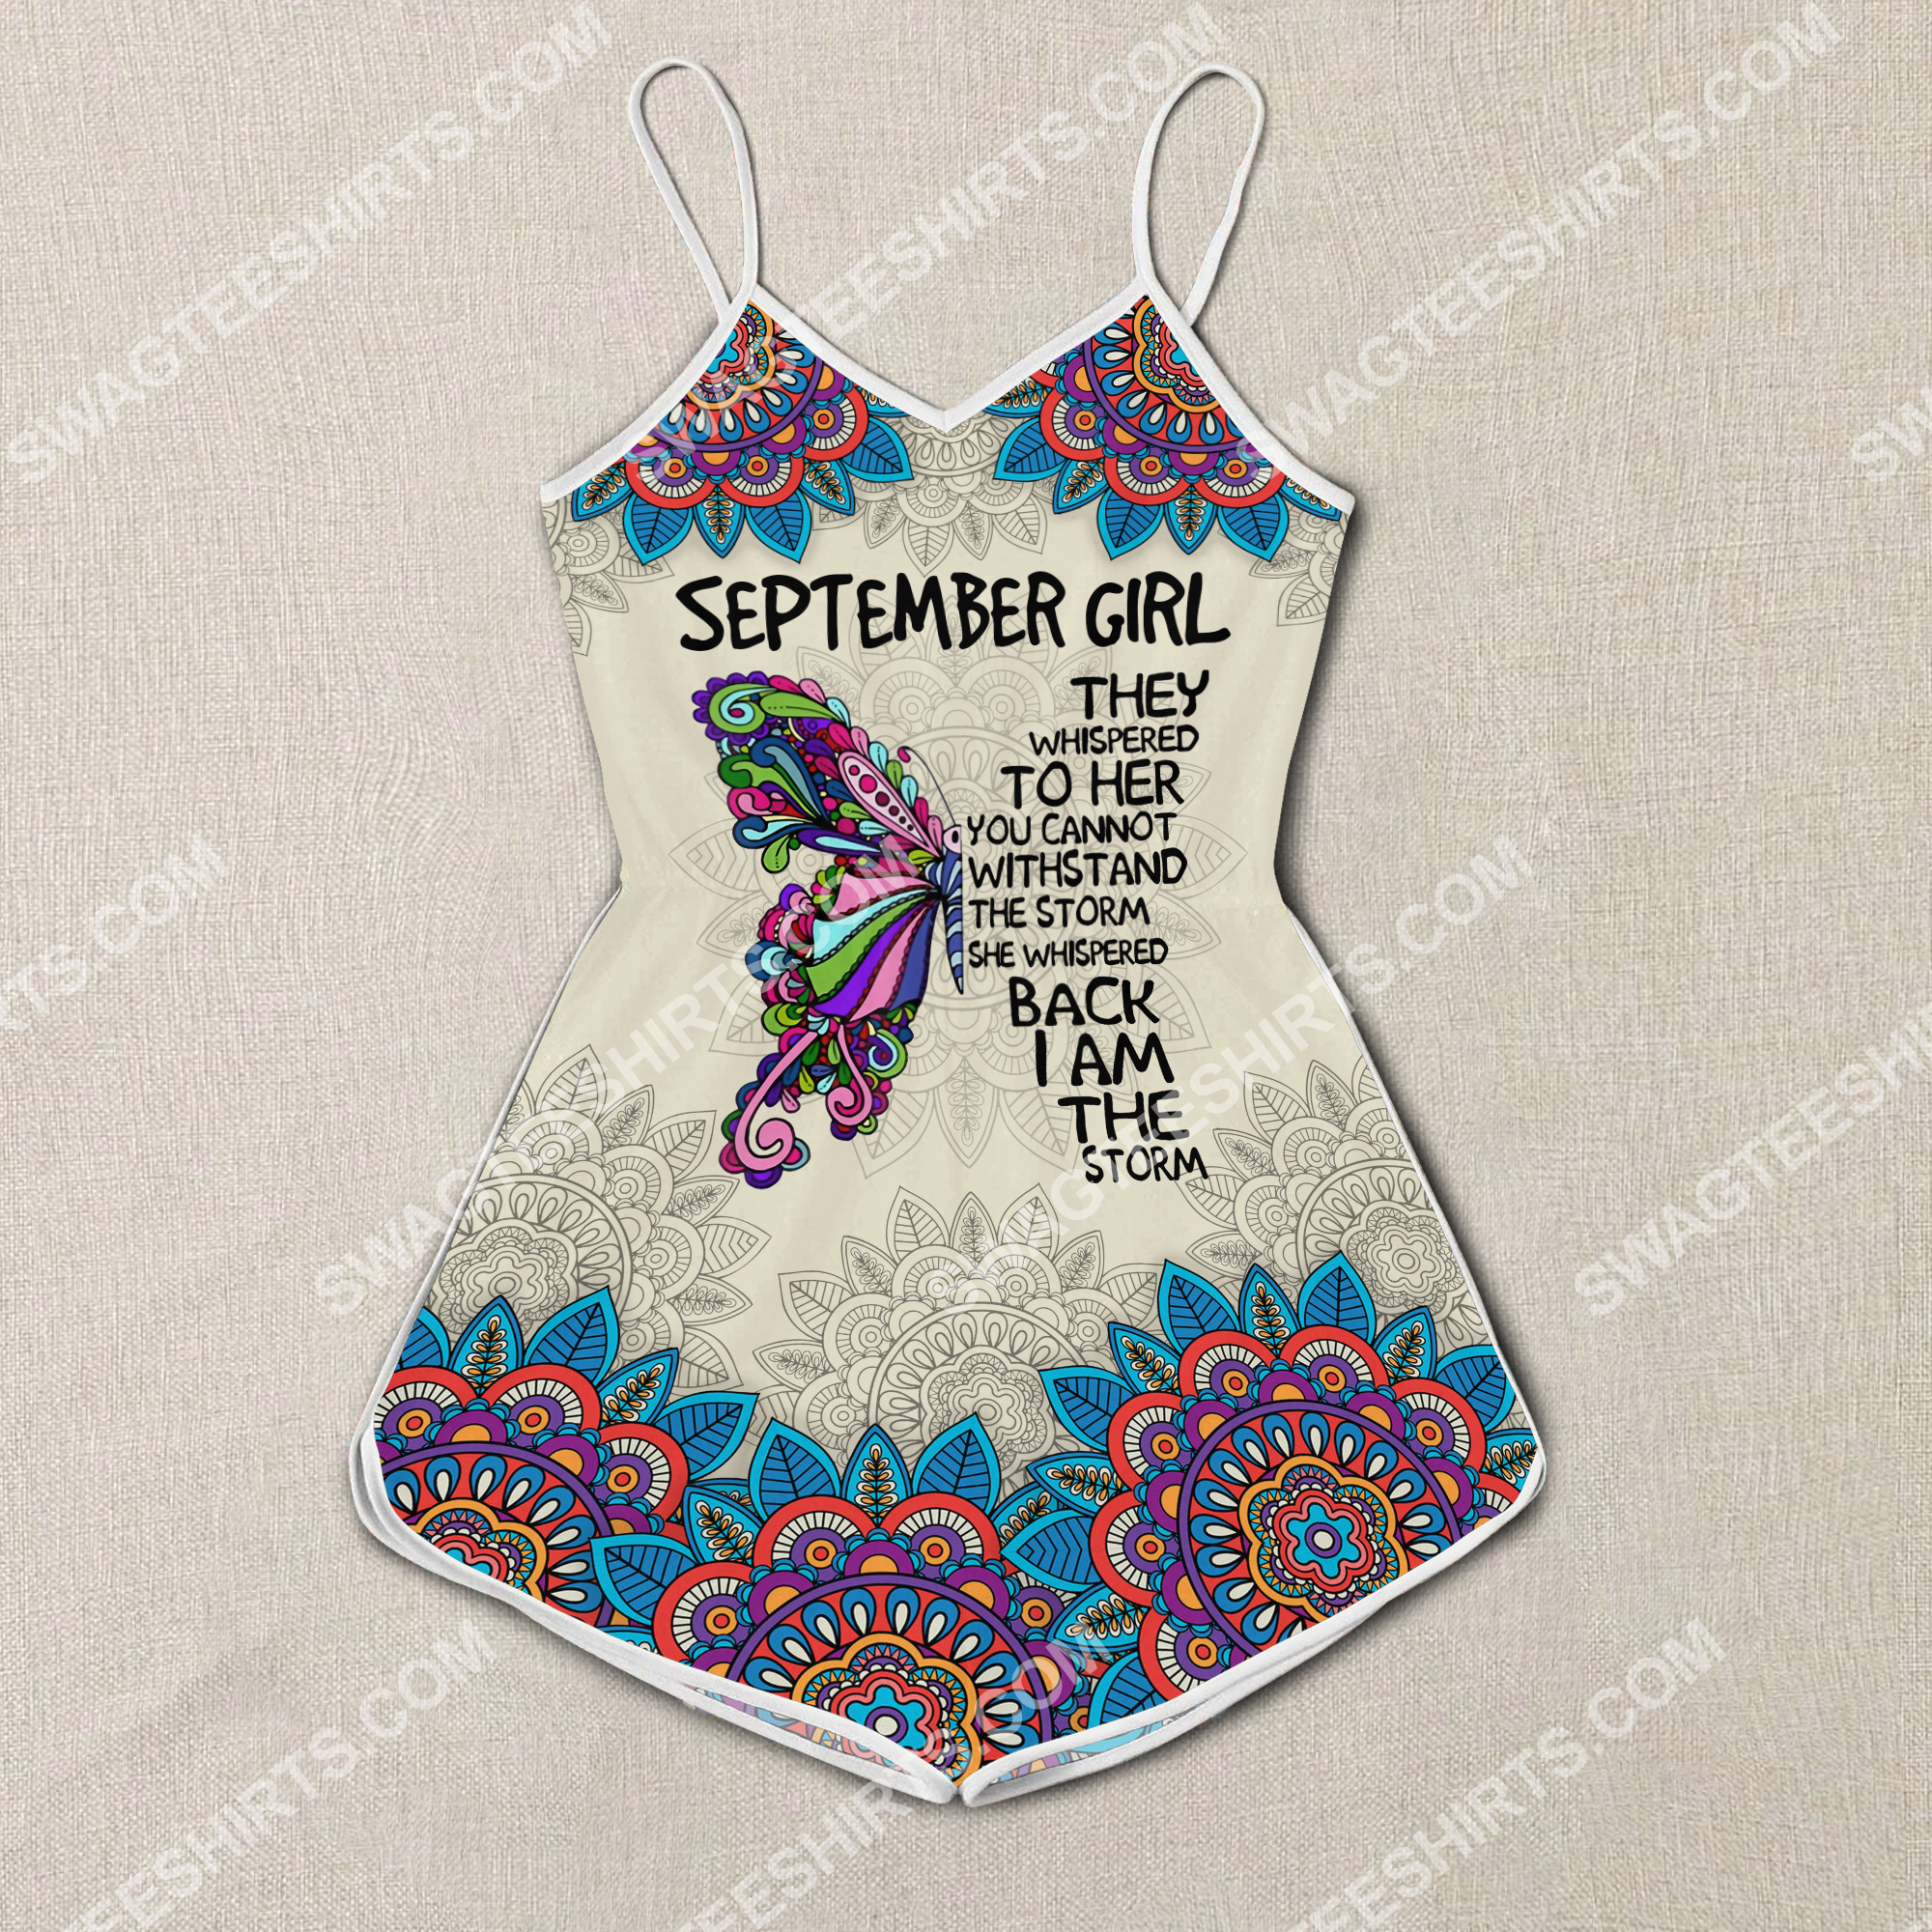 september girl they whispered to her you cannot withstand the storm rompers 3(1)